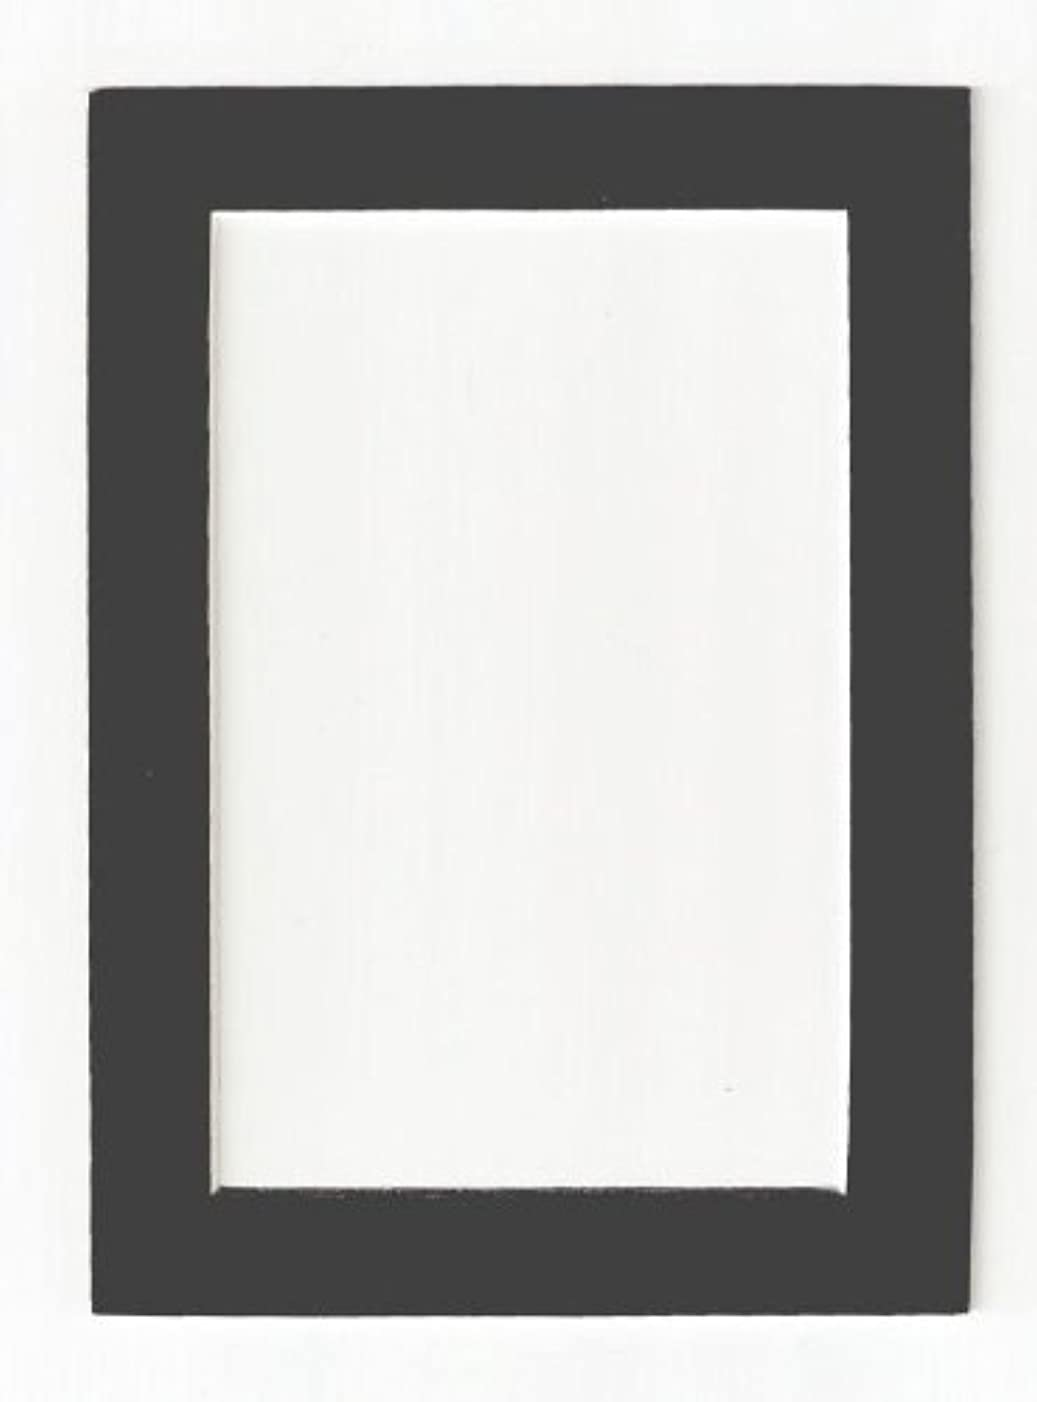 Charcoal - Dark Gray Acid Free Picture Frame Mat, 5x7